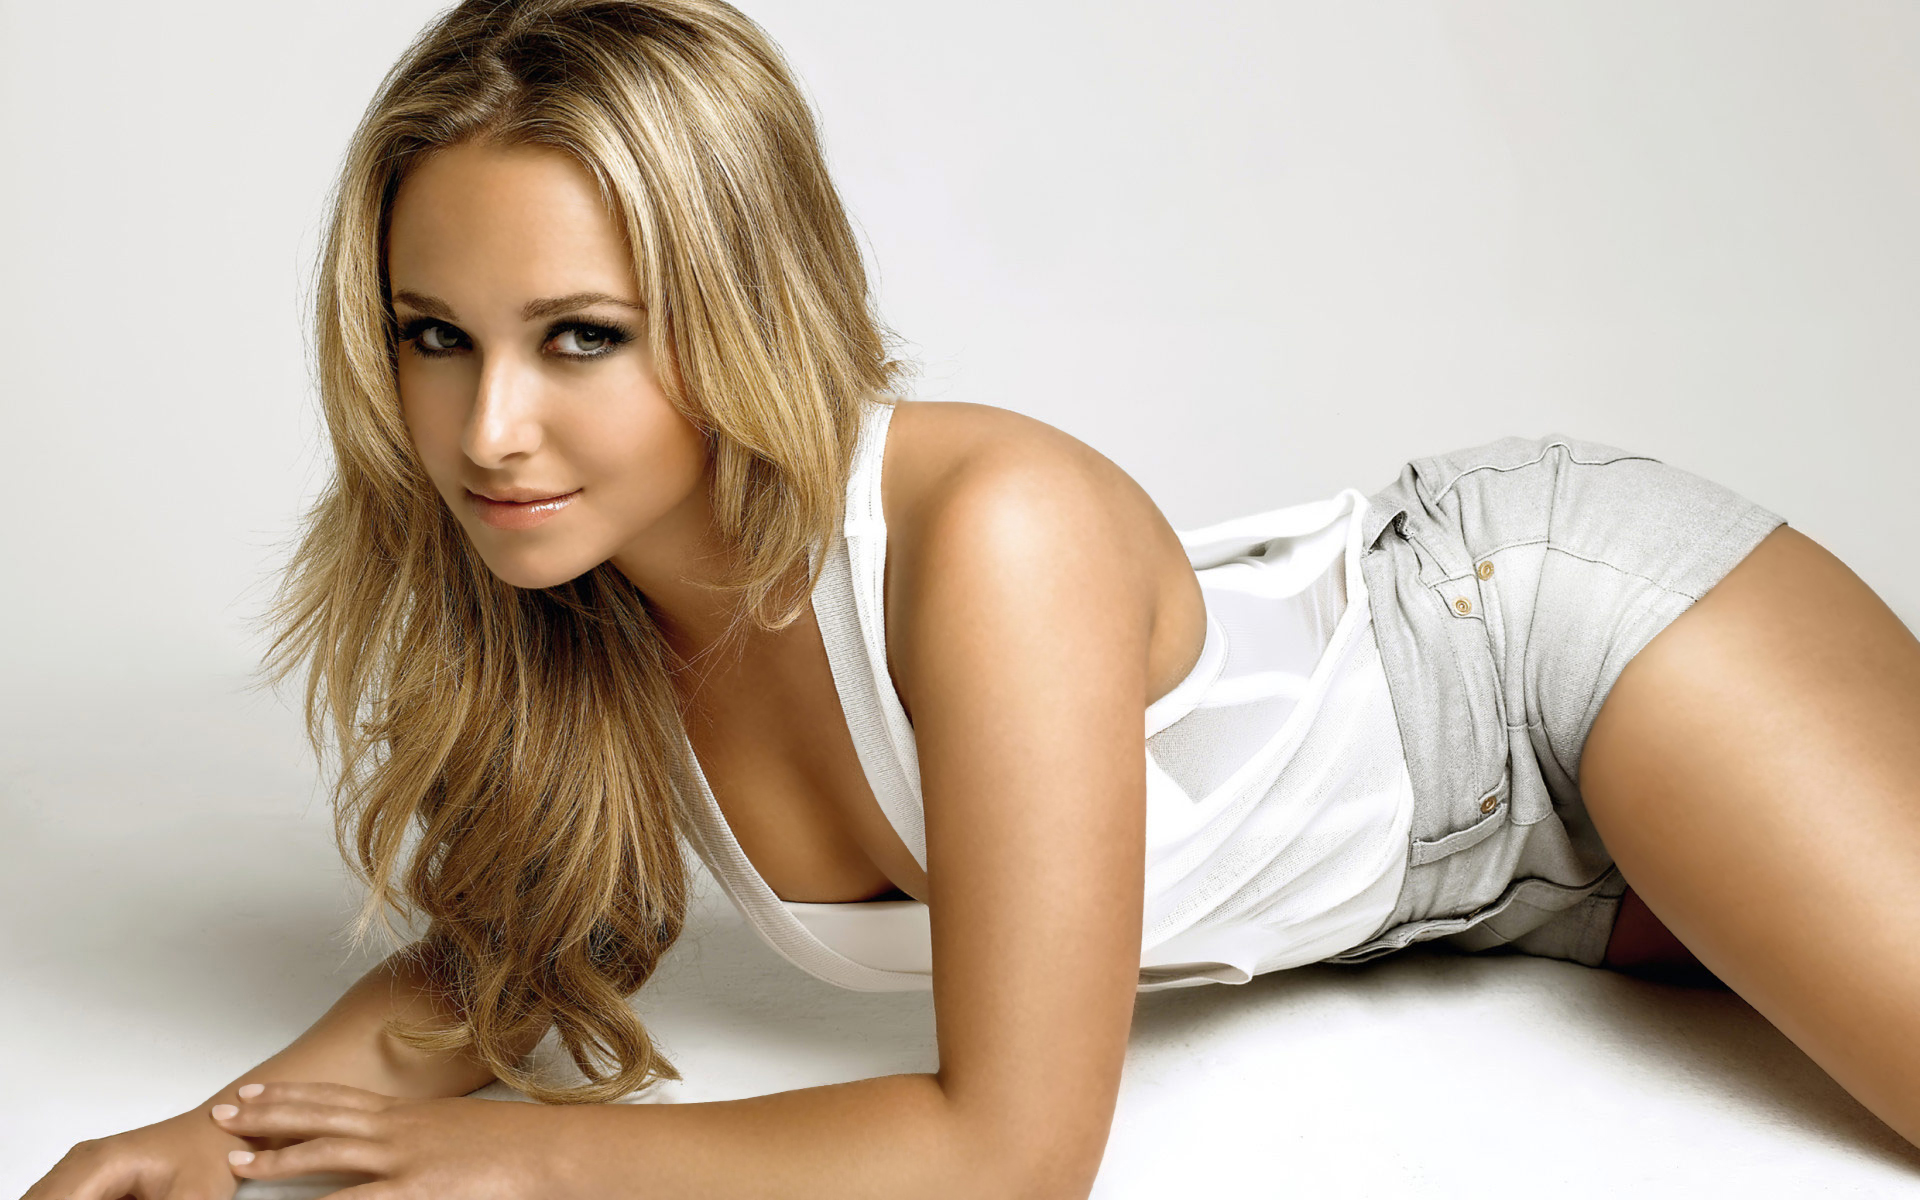 Hayden panettiere Wallpapers Pictures Photos Images. «